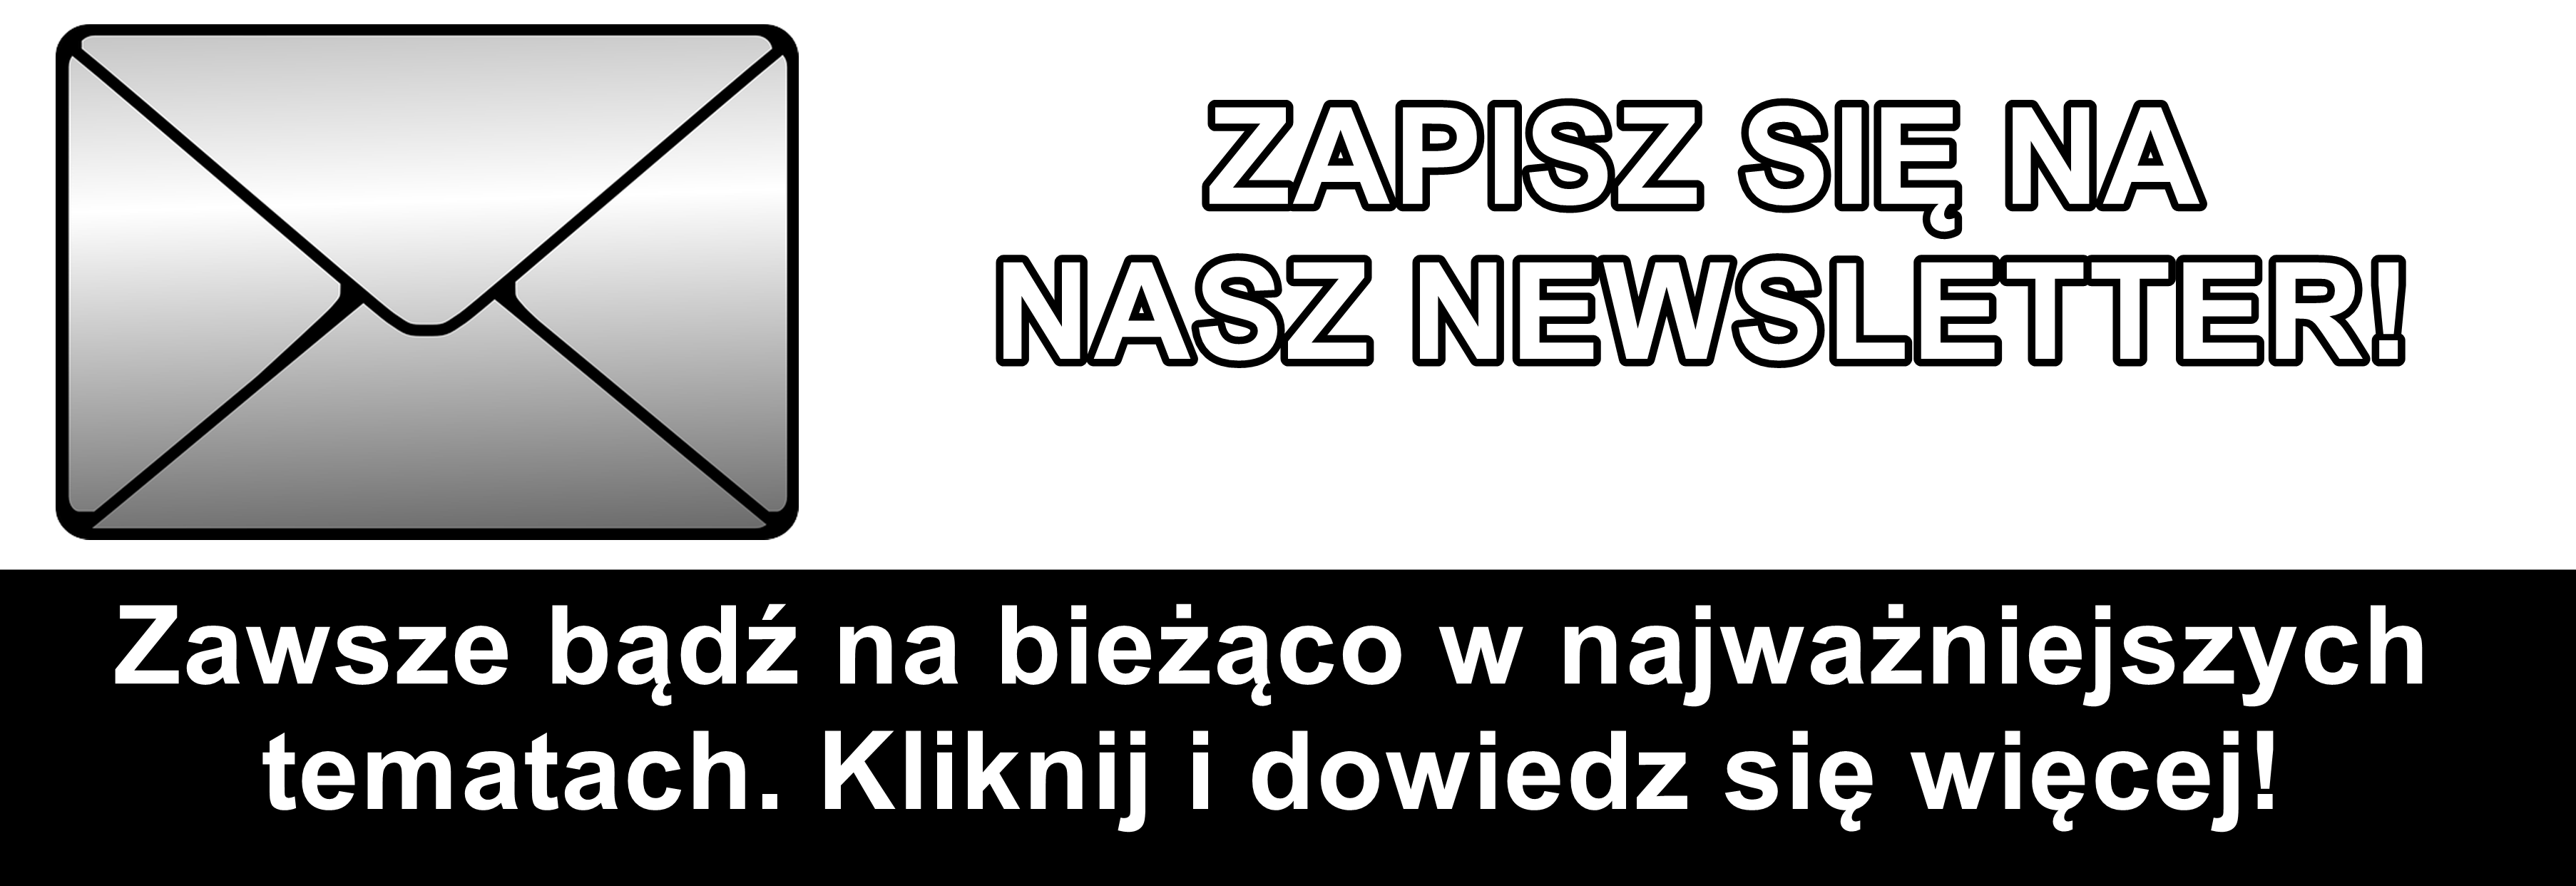 szkic zastrzeżony przez wydawcę kontrrewolucja.net